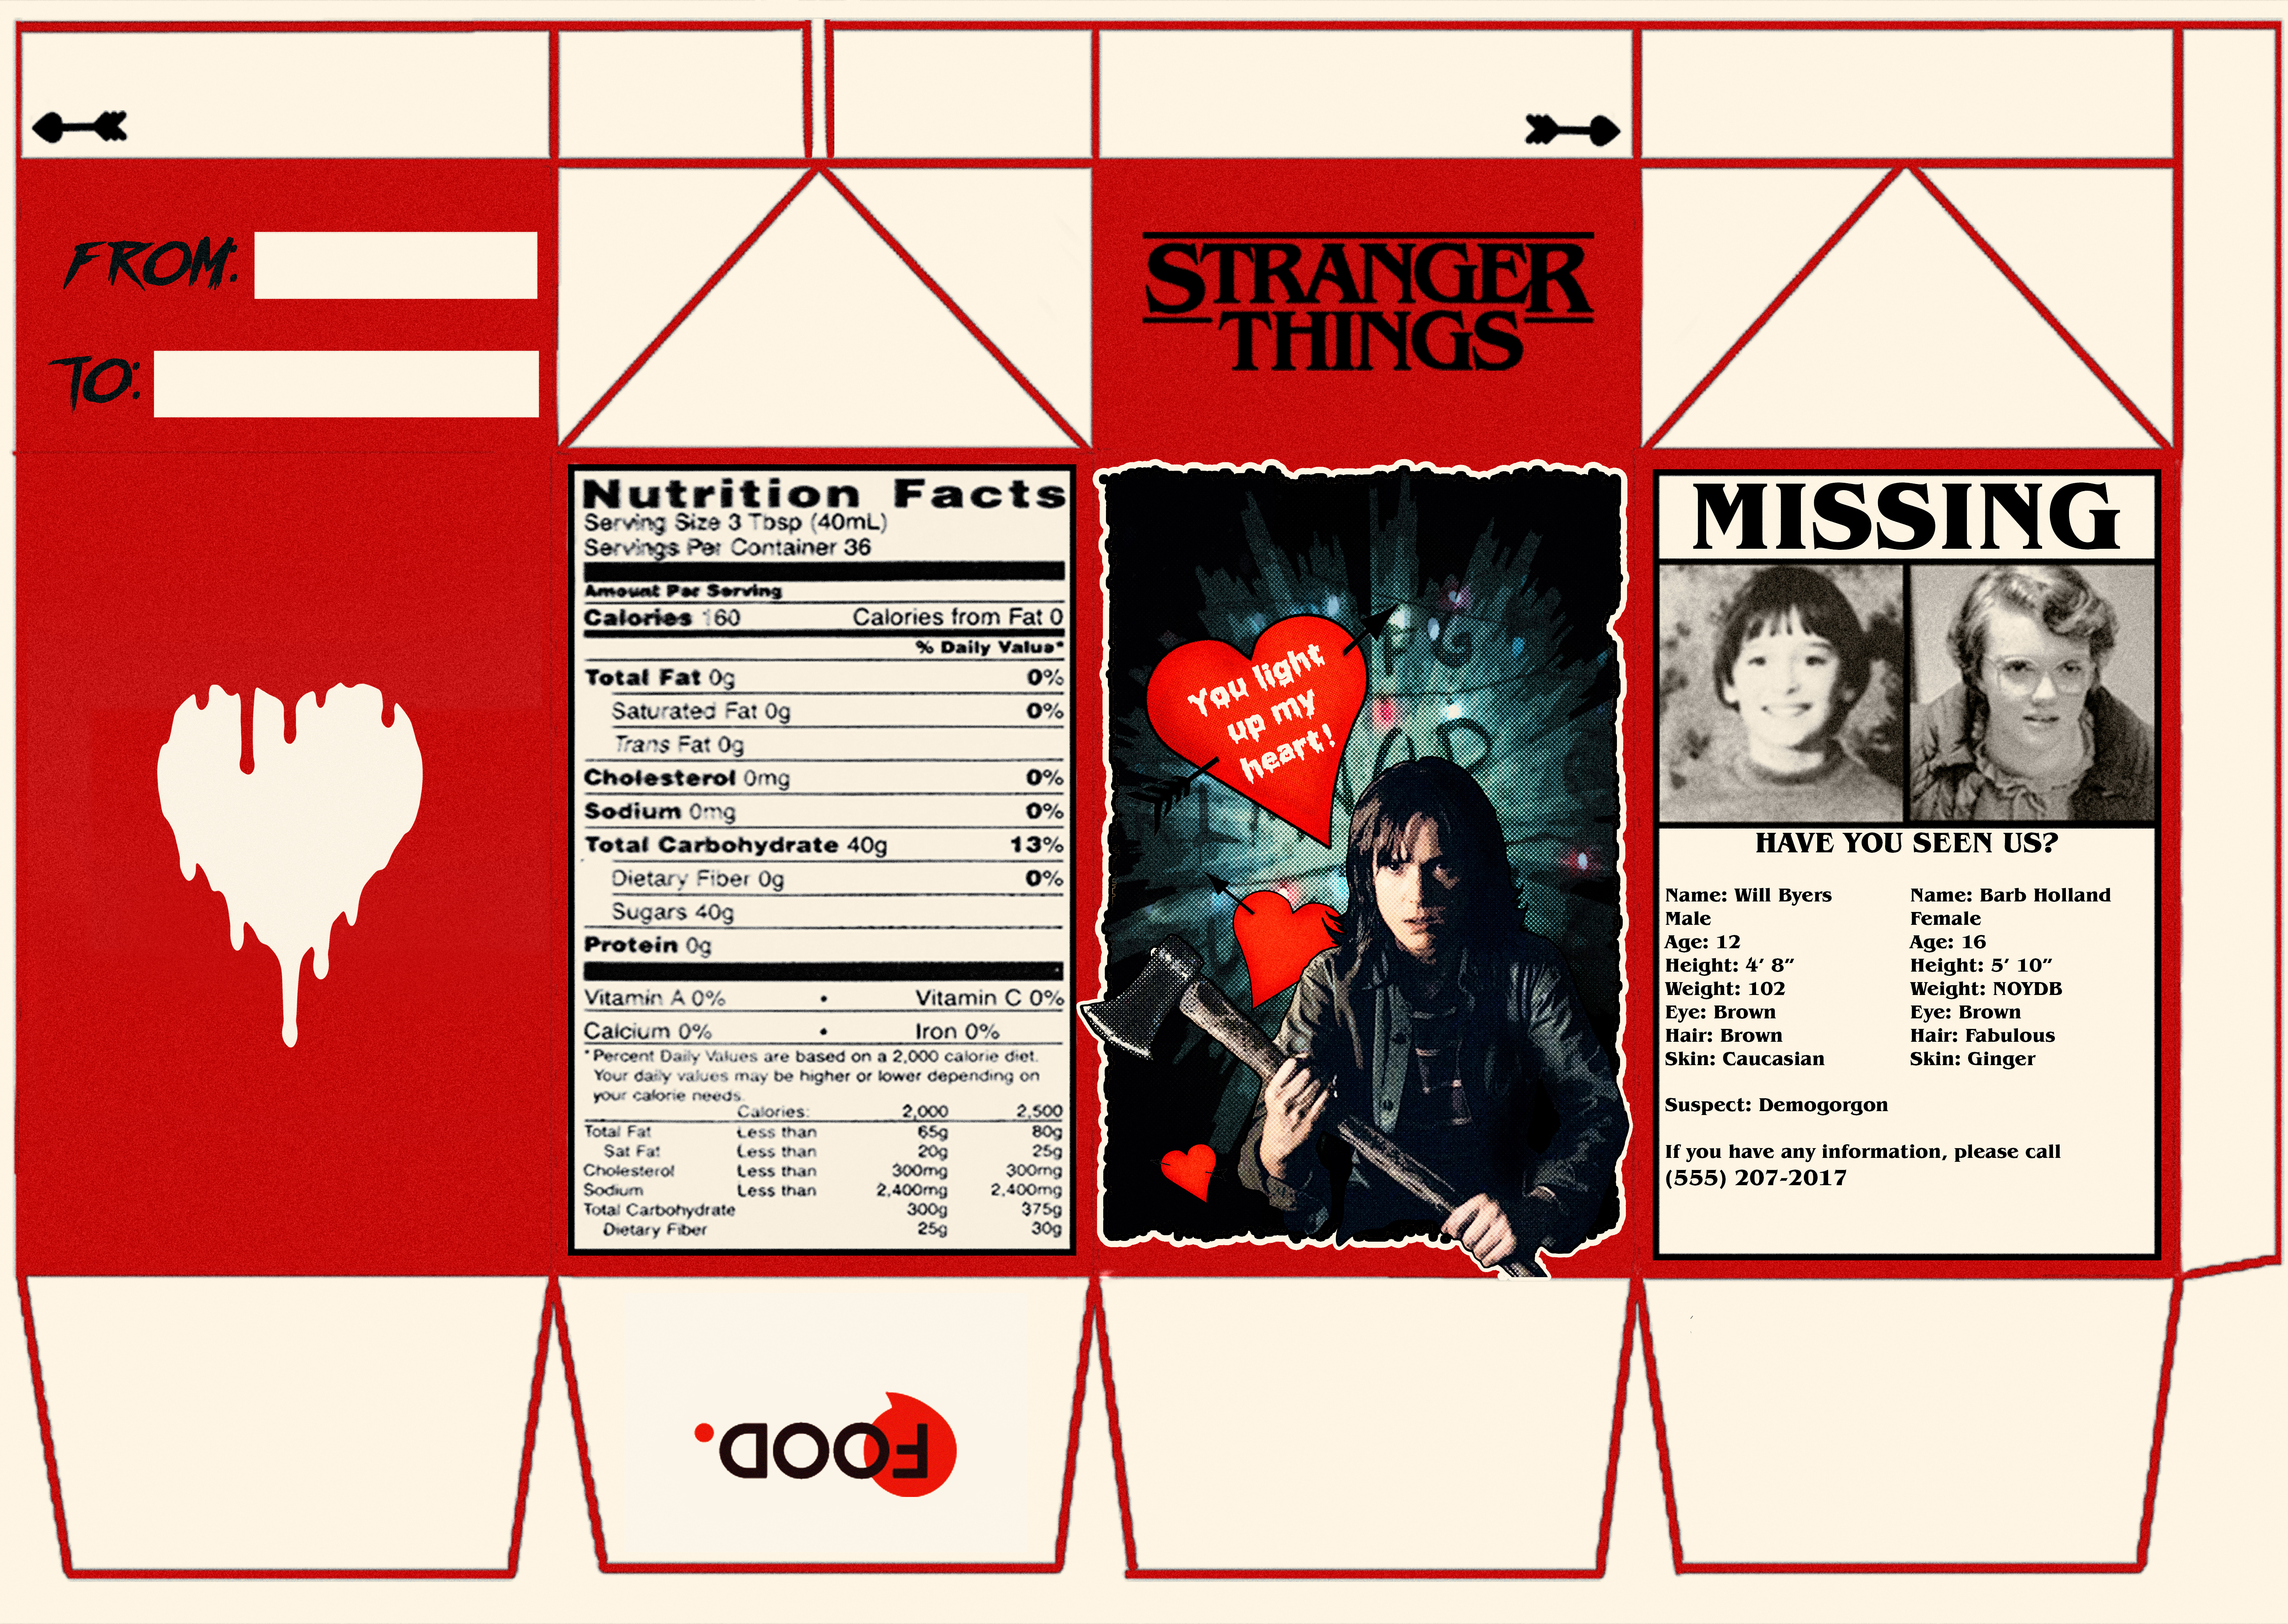 Stranger Things Candy Cartons